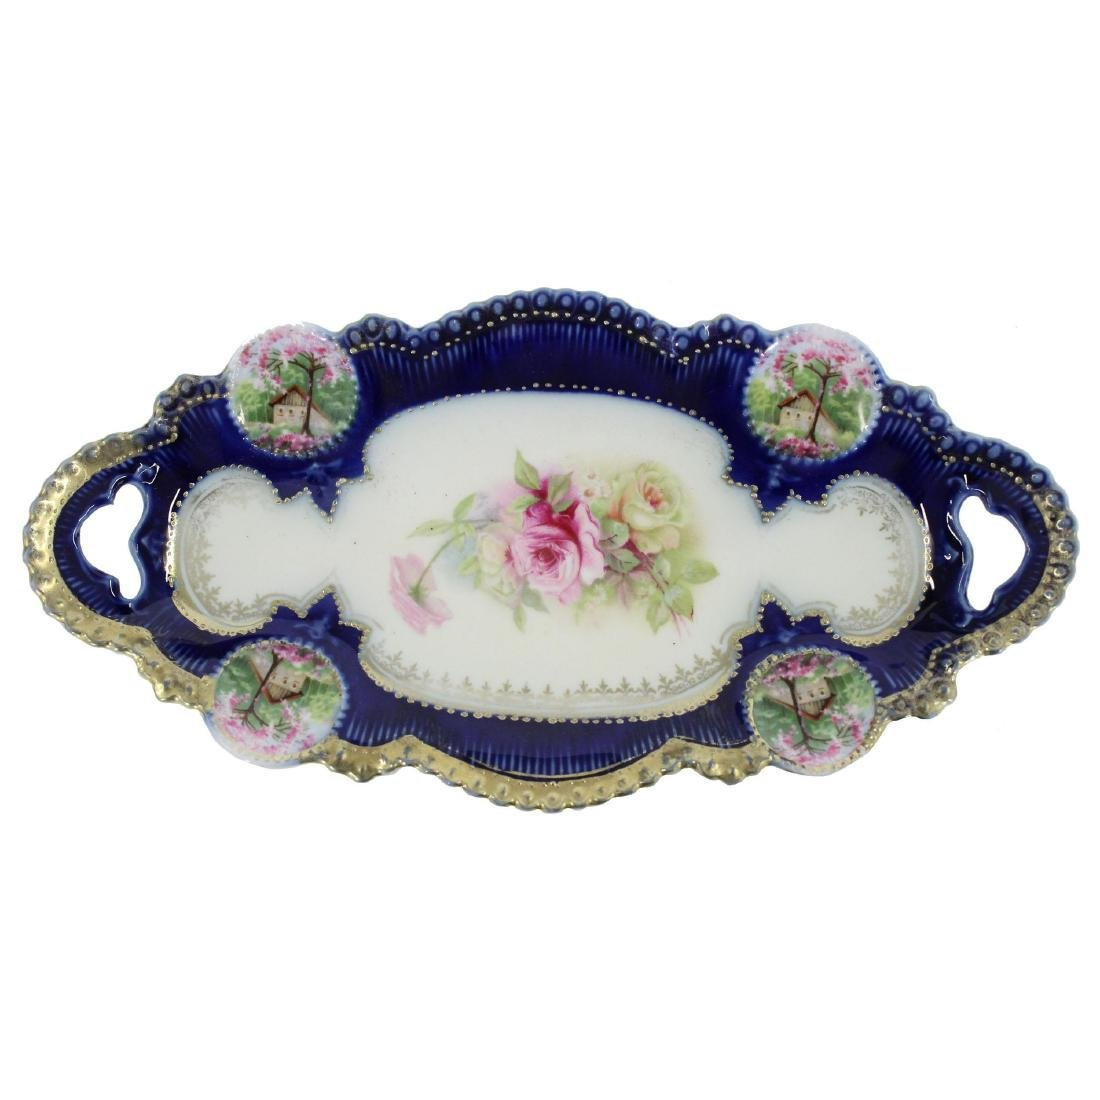 Relish Tray - Marked R.S. Prussia - 9.75""